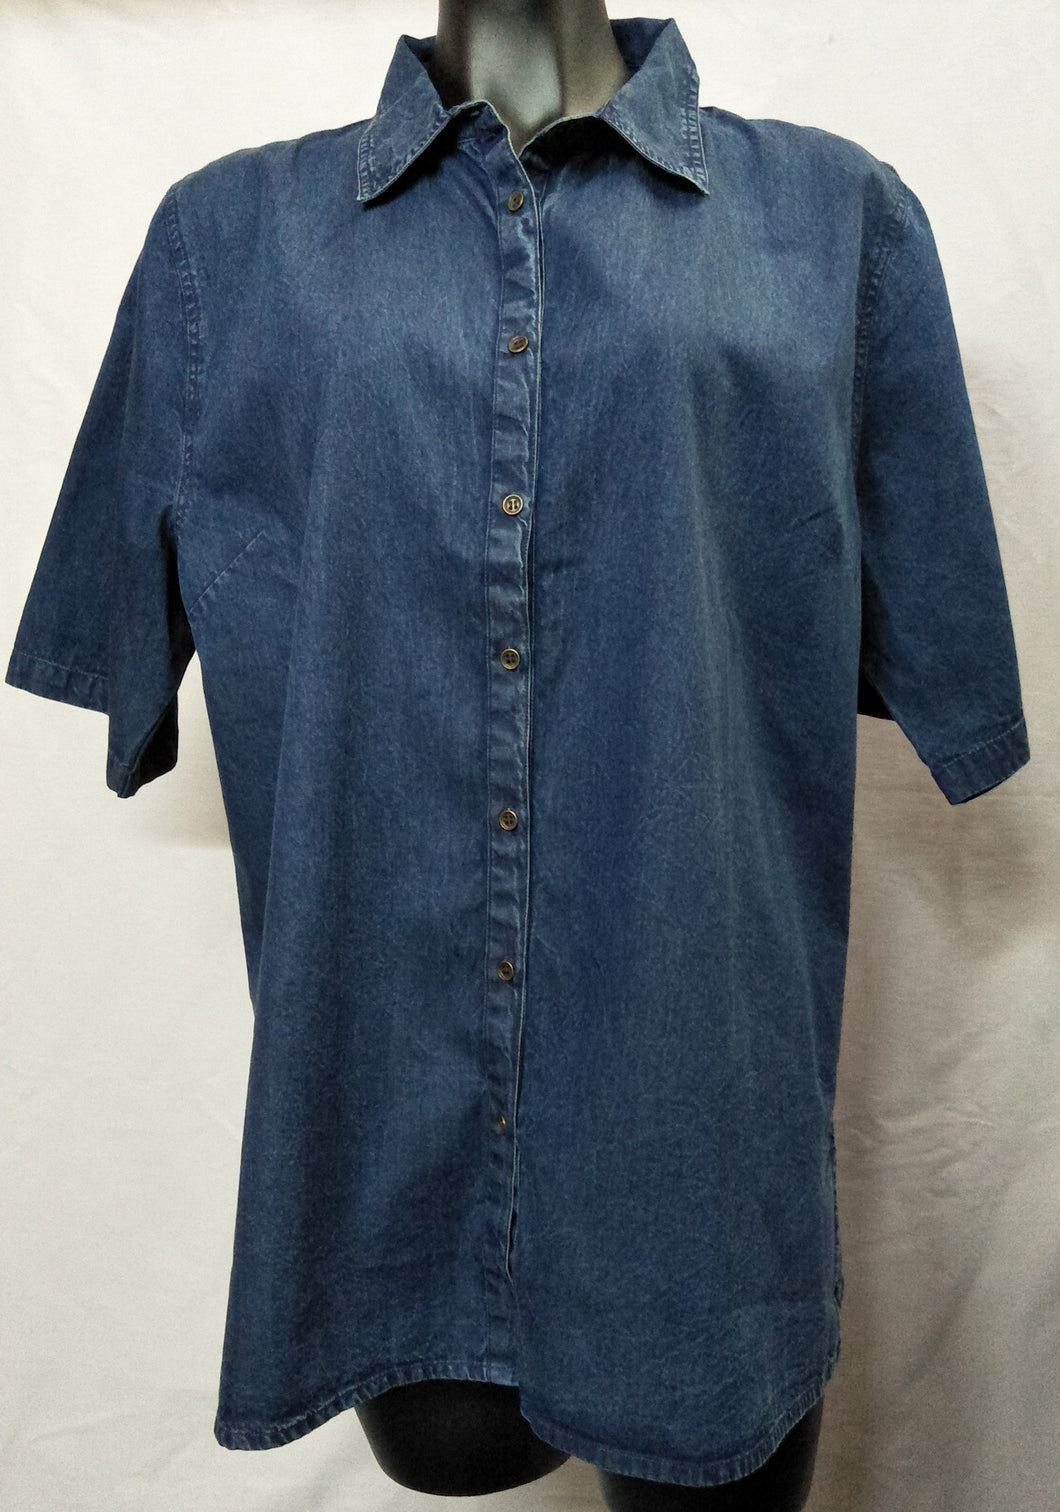 Dark Blue Denim Look Button Up Collared Shirt